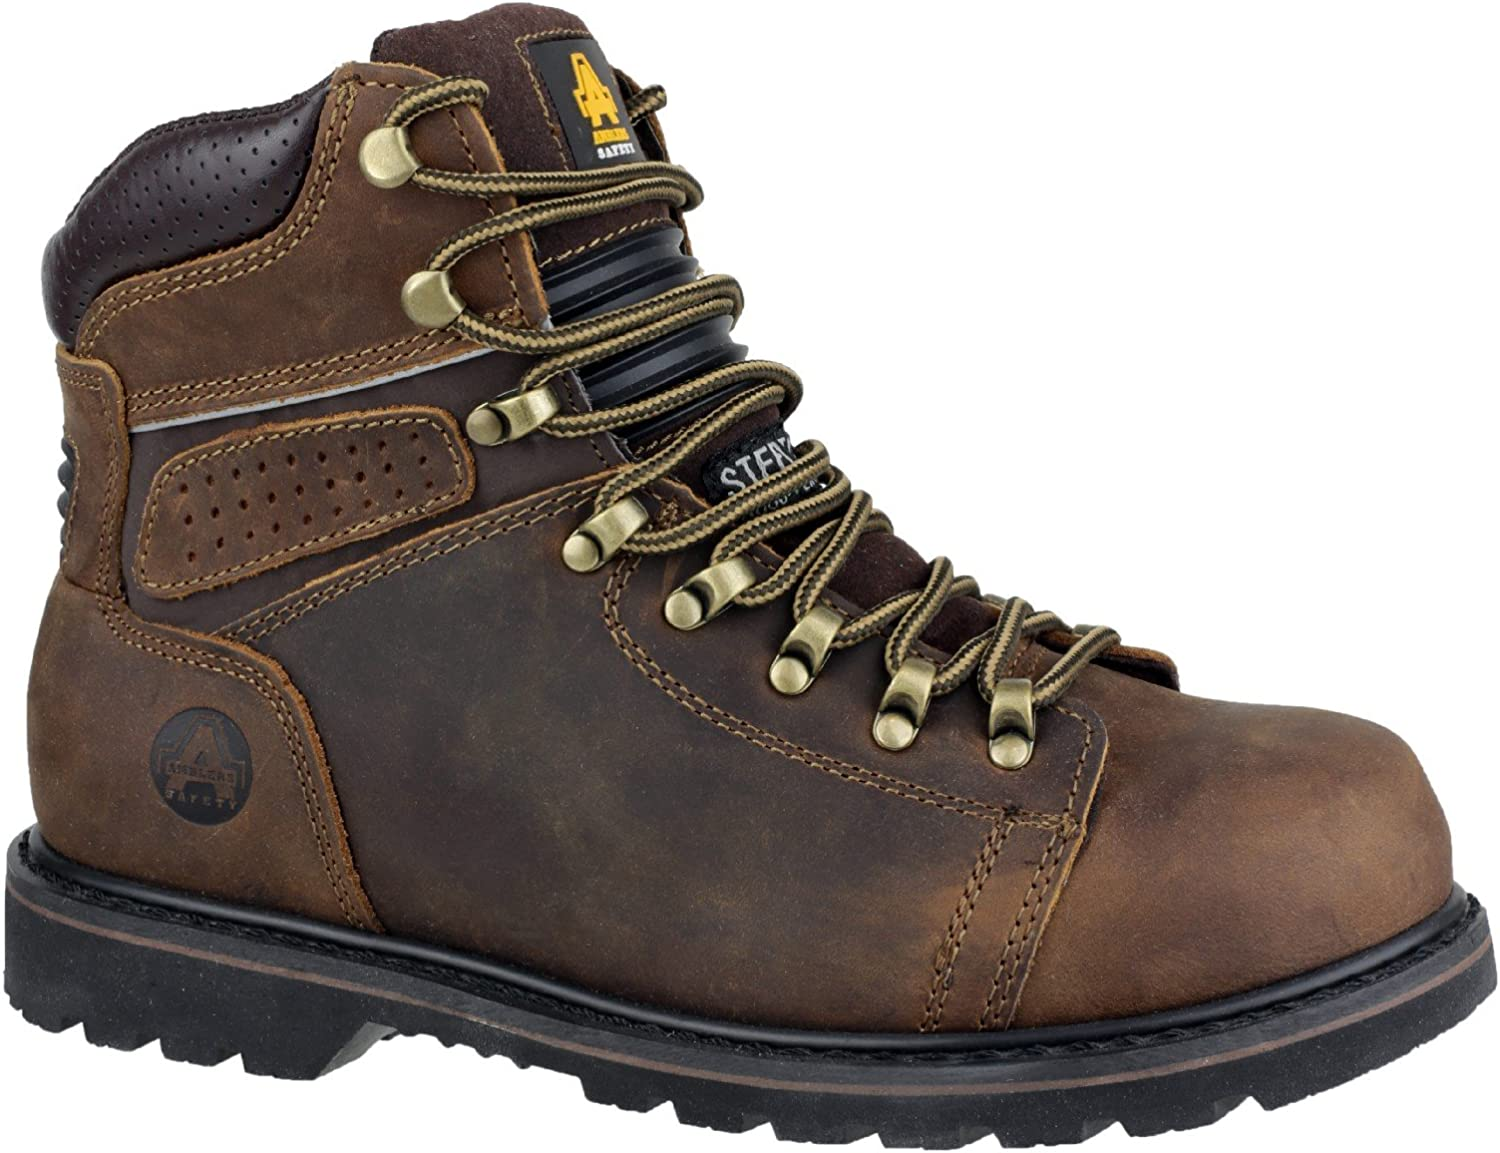 Amblers FS157 Welted Unisex Safety Boots Safety Footwear